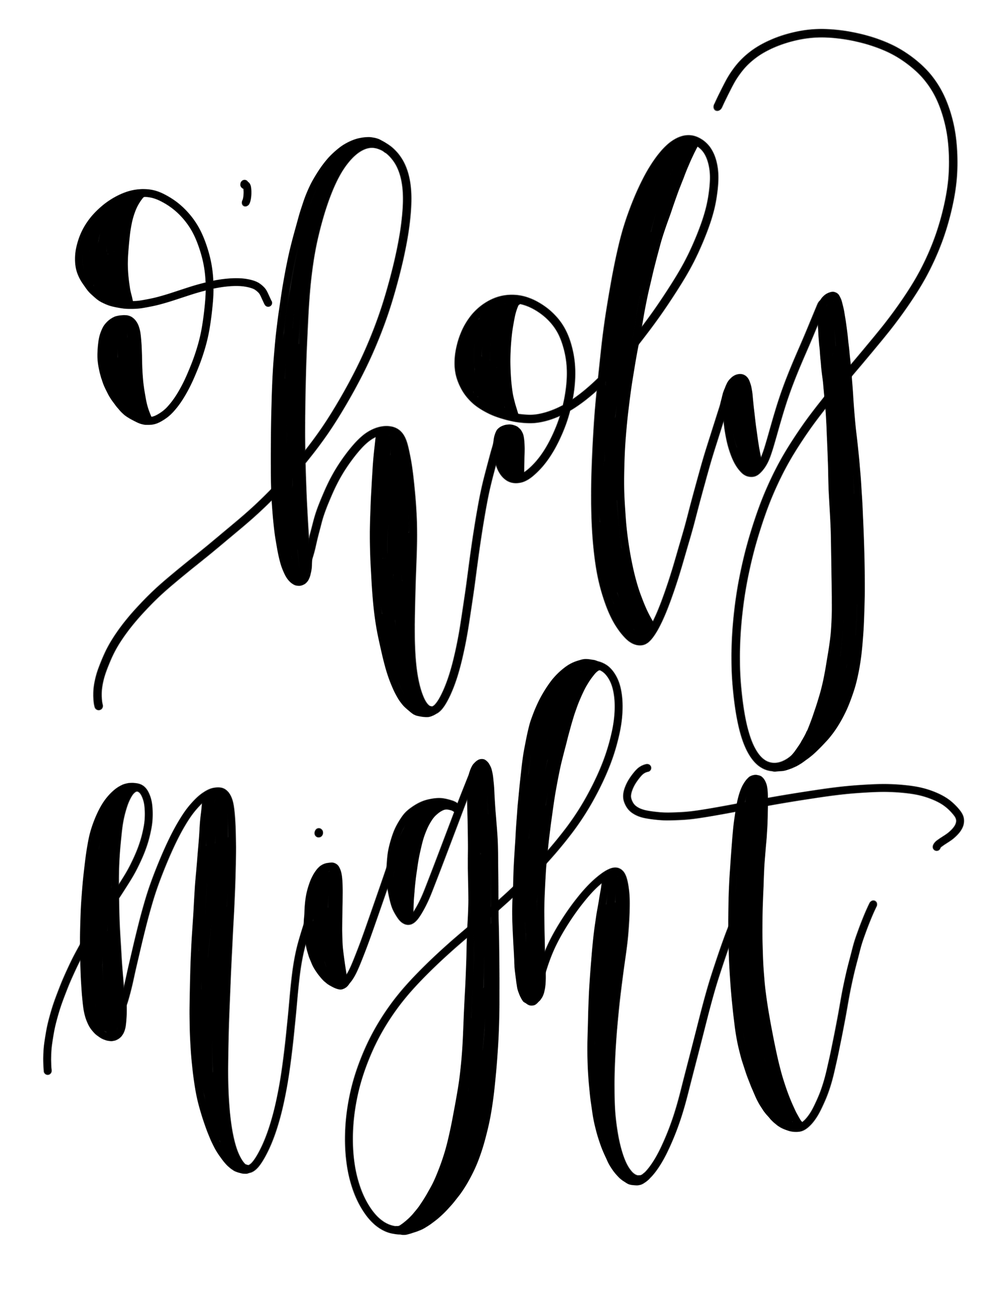 oholynight.png